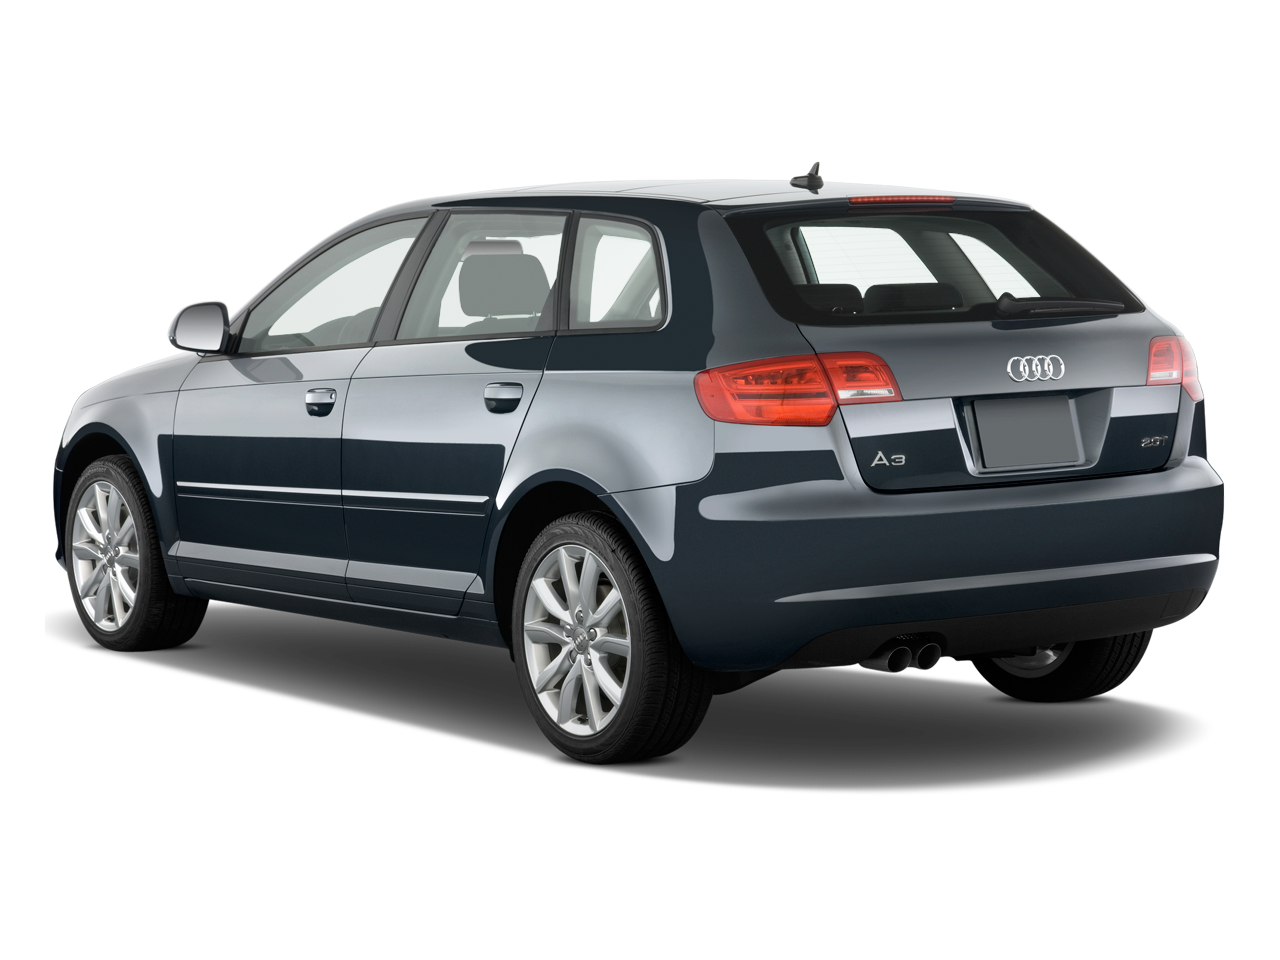 2009 audi a3 2 0t quattro audi luxury wagon review automobile magazine. Black Bedroom Furniture Sets. Home Design Ideas